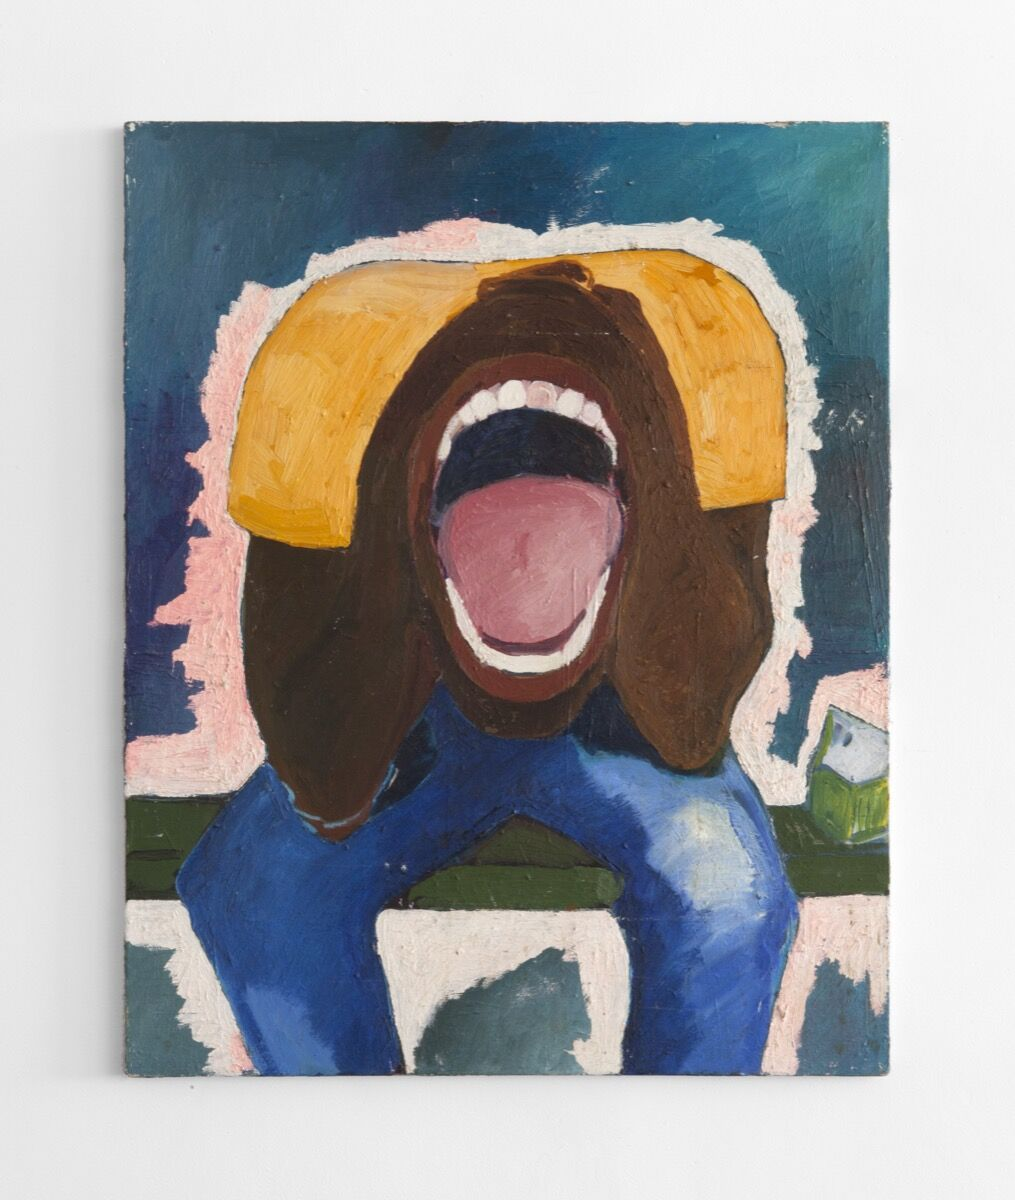 Henry Taylor, Screaming Head, 1990. © Henry Taylor. Courtesy of the artist and Blum & Poe, Los Angeles/New York/Tokyo.